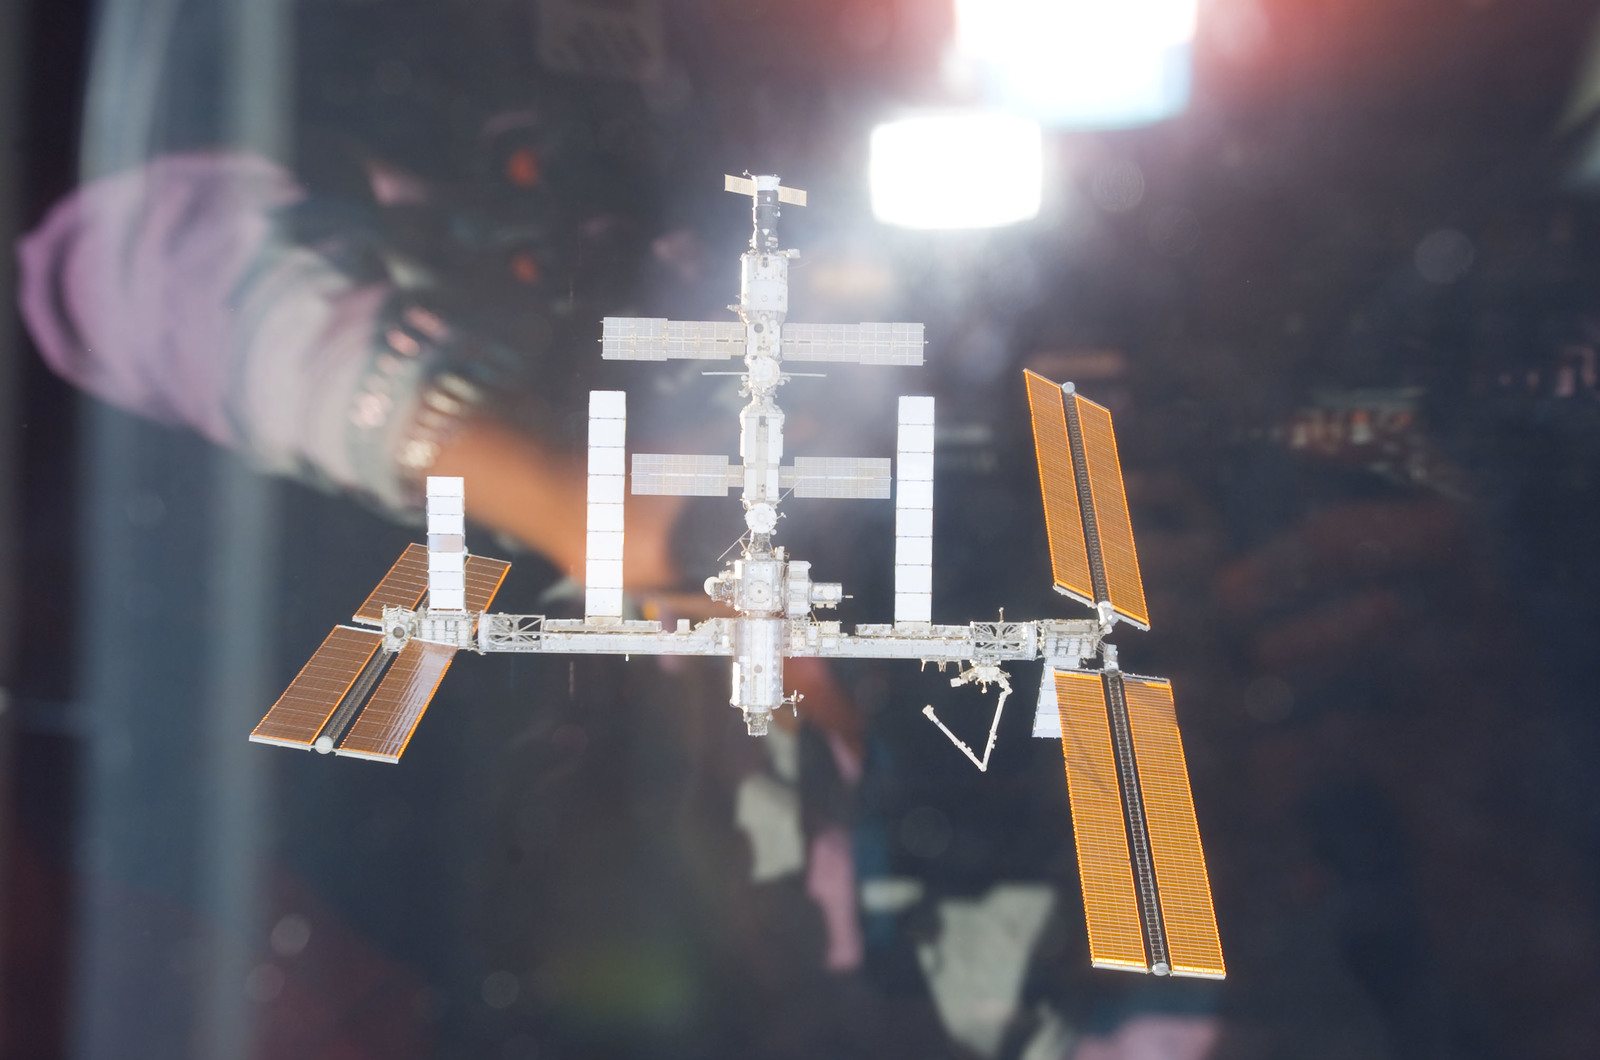 S118E06067 - STS-118 - View of the ISS taken during STS-118